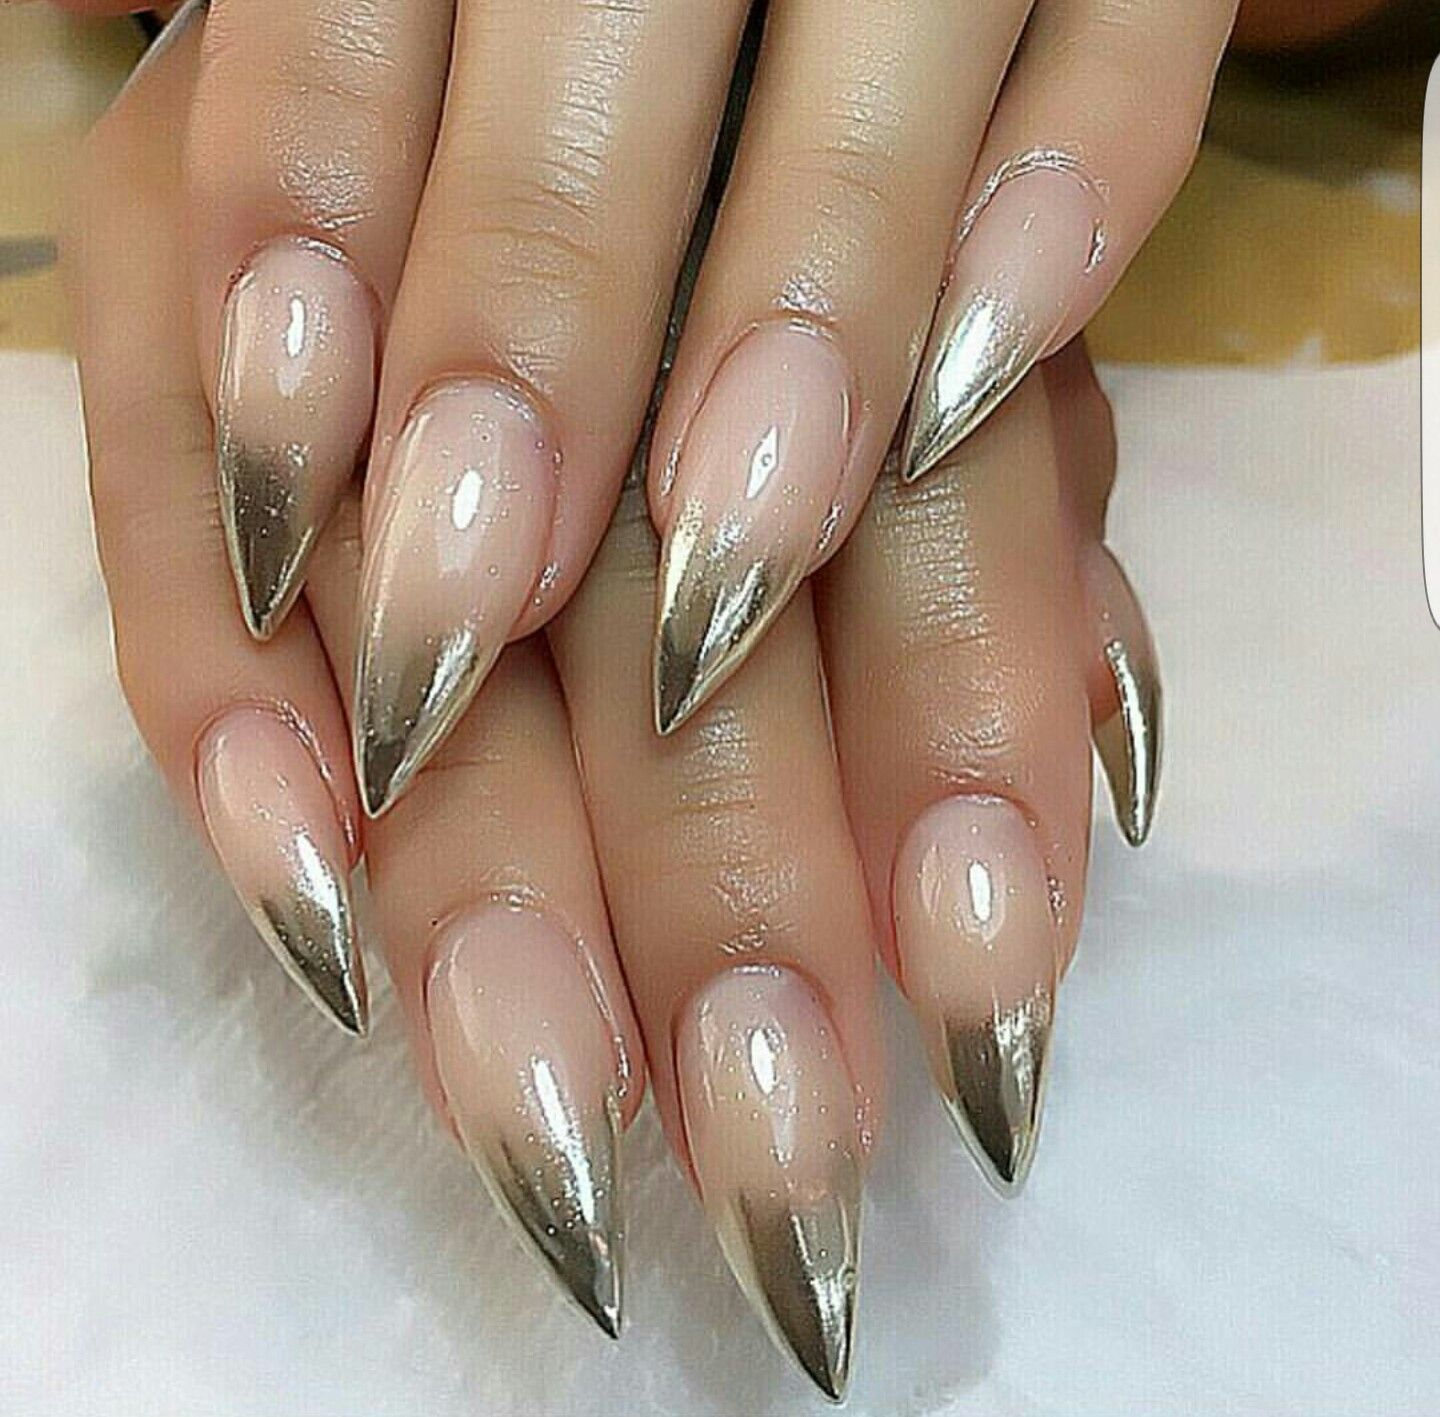 Pin by honesty on nails xx | Pinterest | Nails games, Nail nail and ...